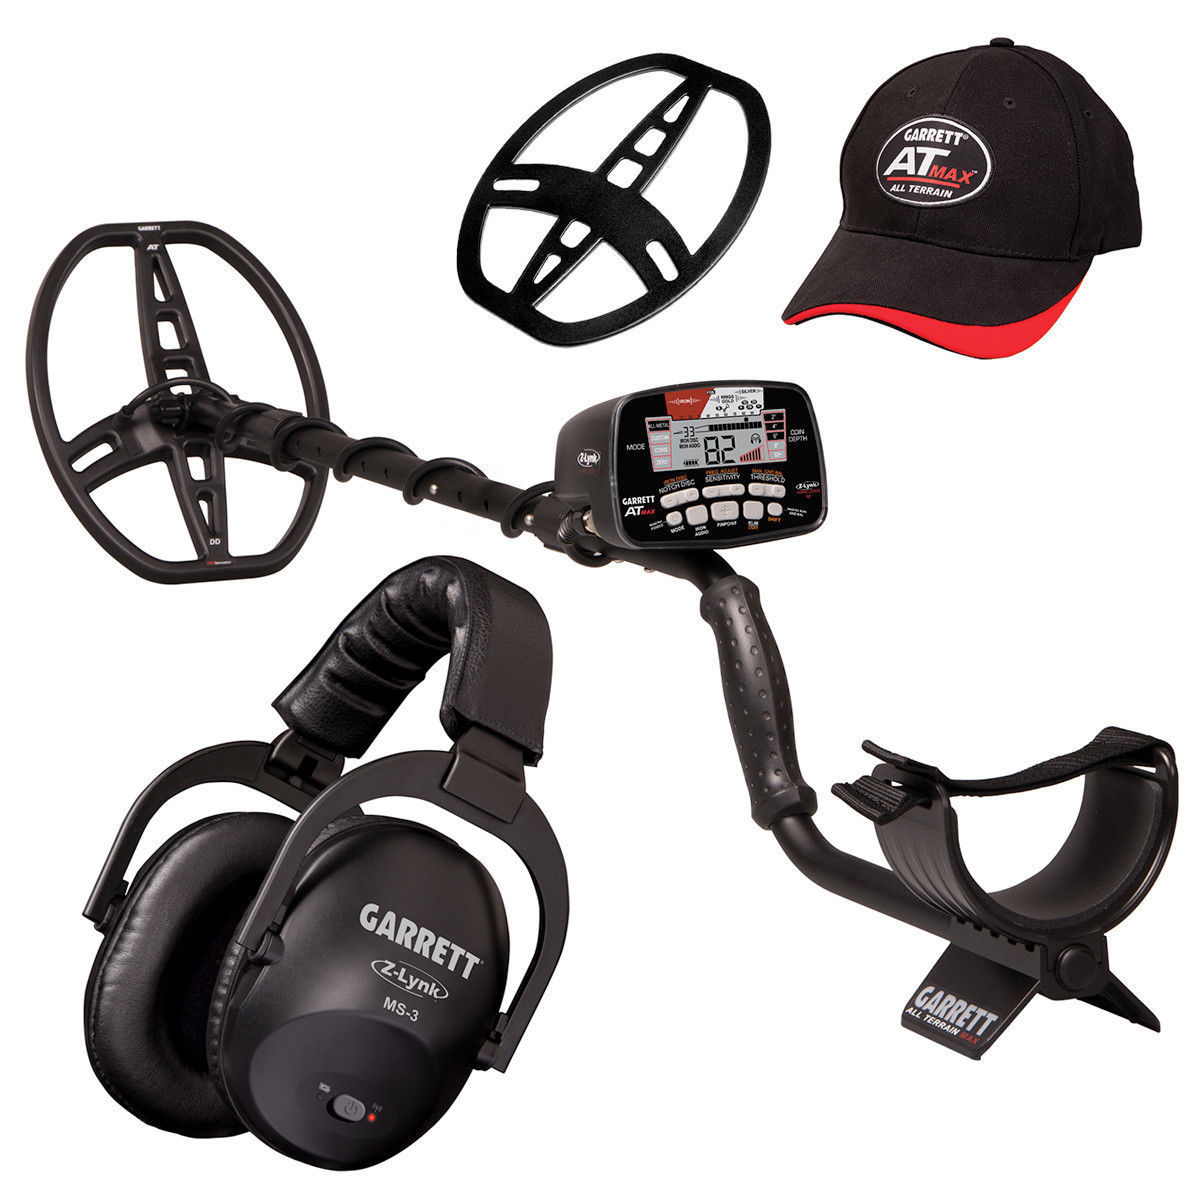 Garrett AT Max metal detector 3m waterproof